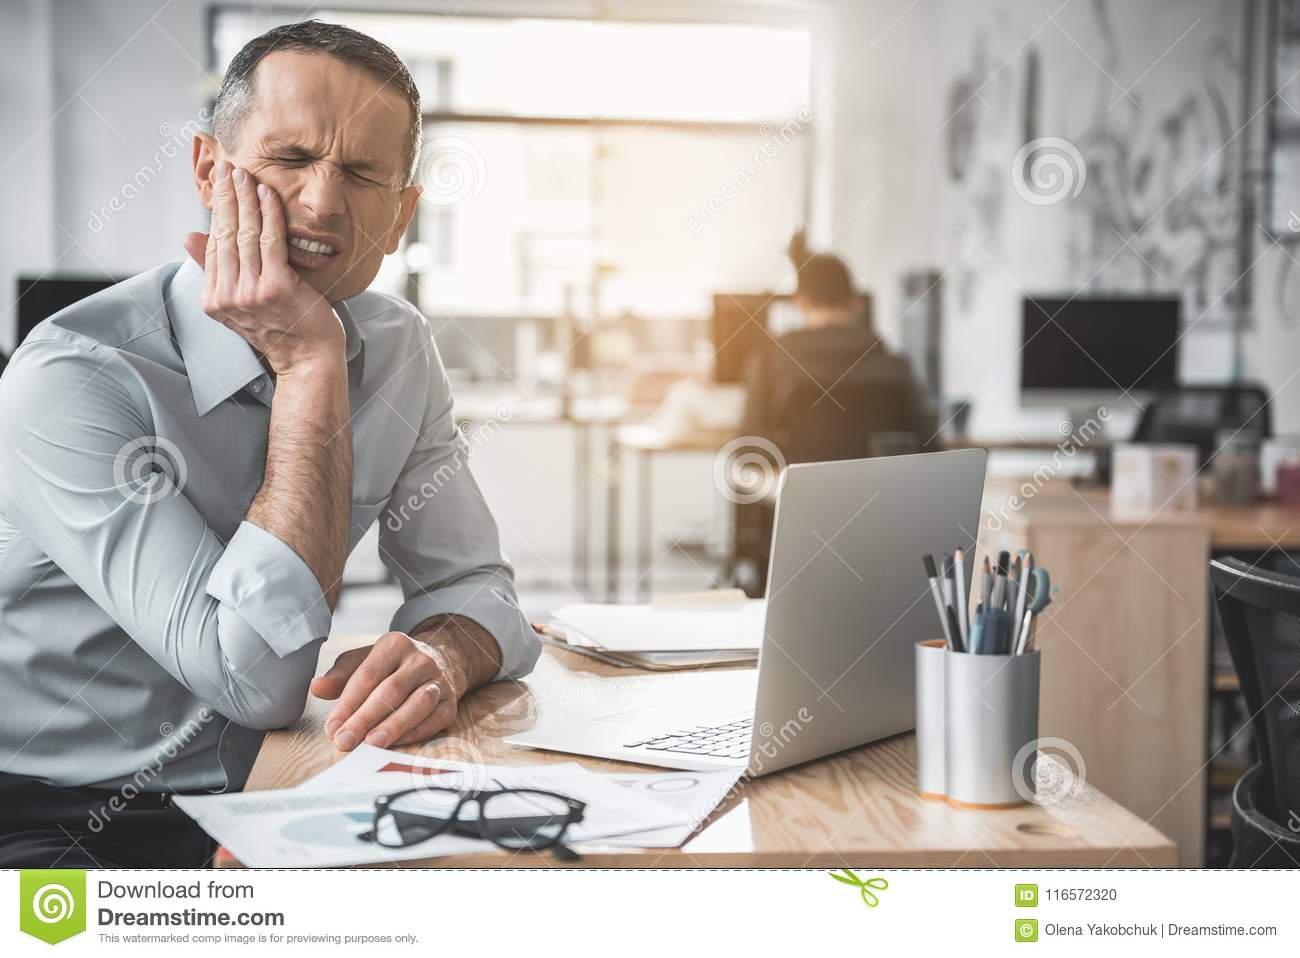 Disillusioned male having toothache at job